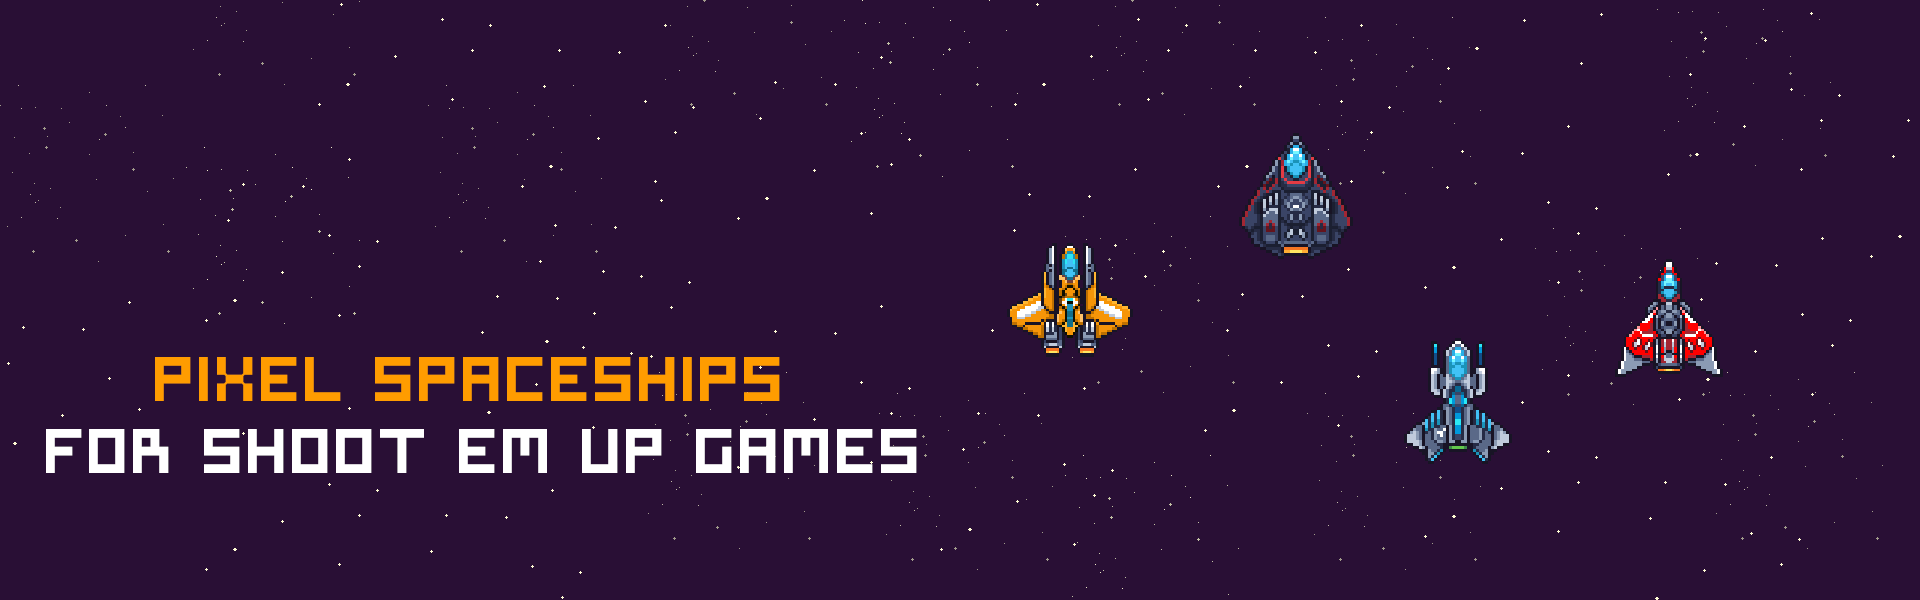 Pixel Art Spaceships for SHMUP